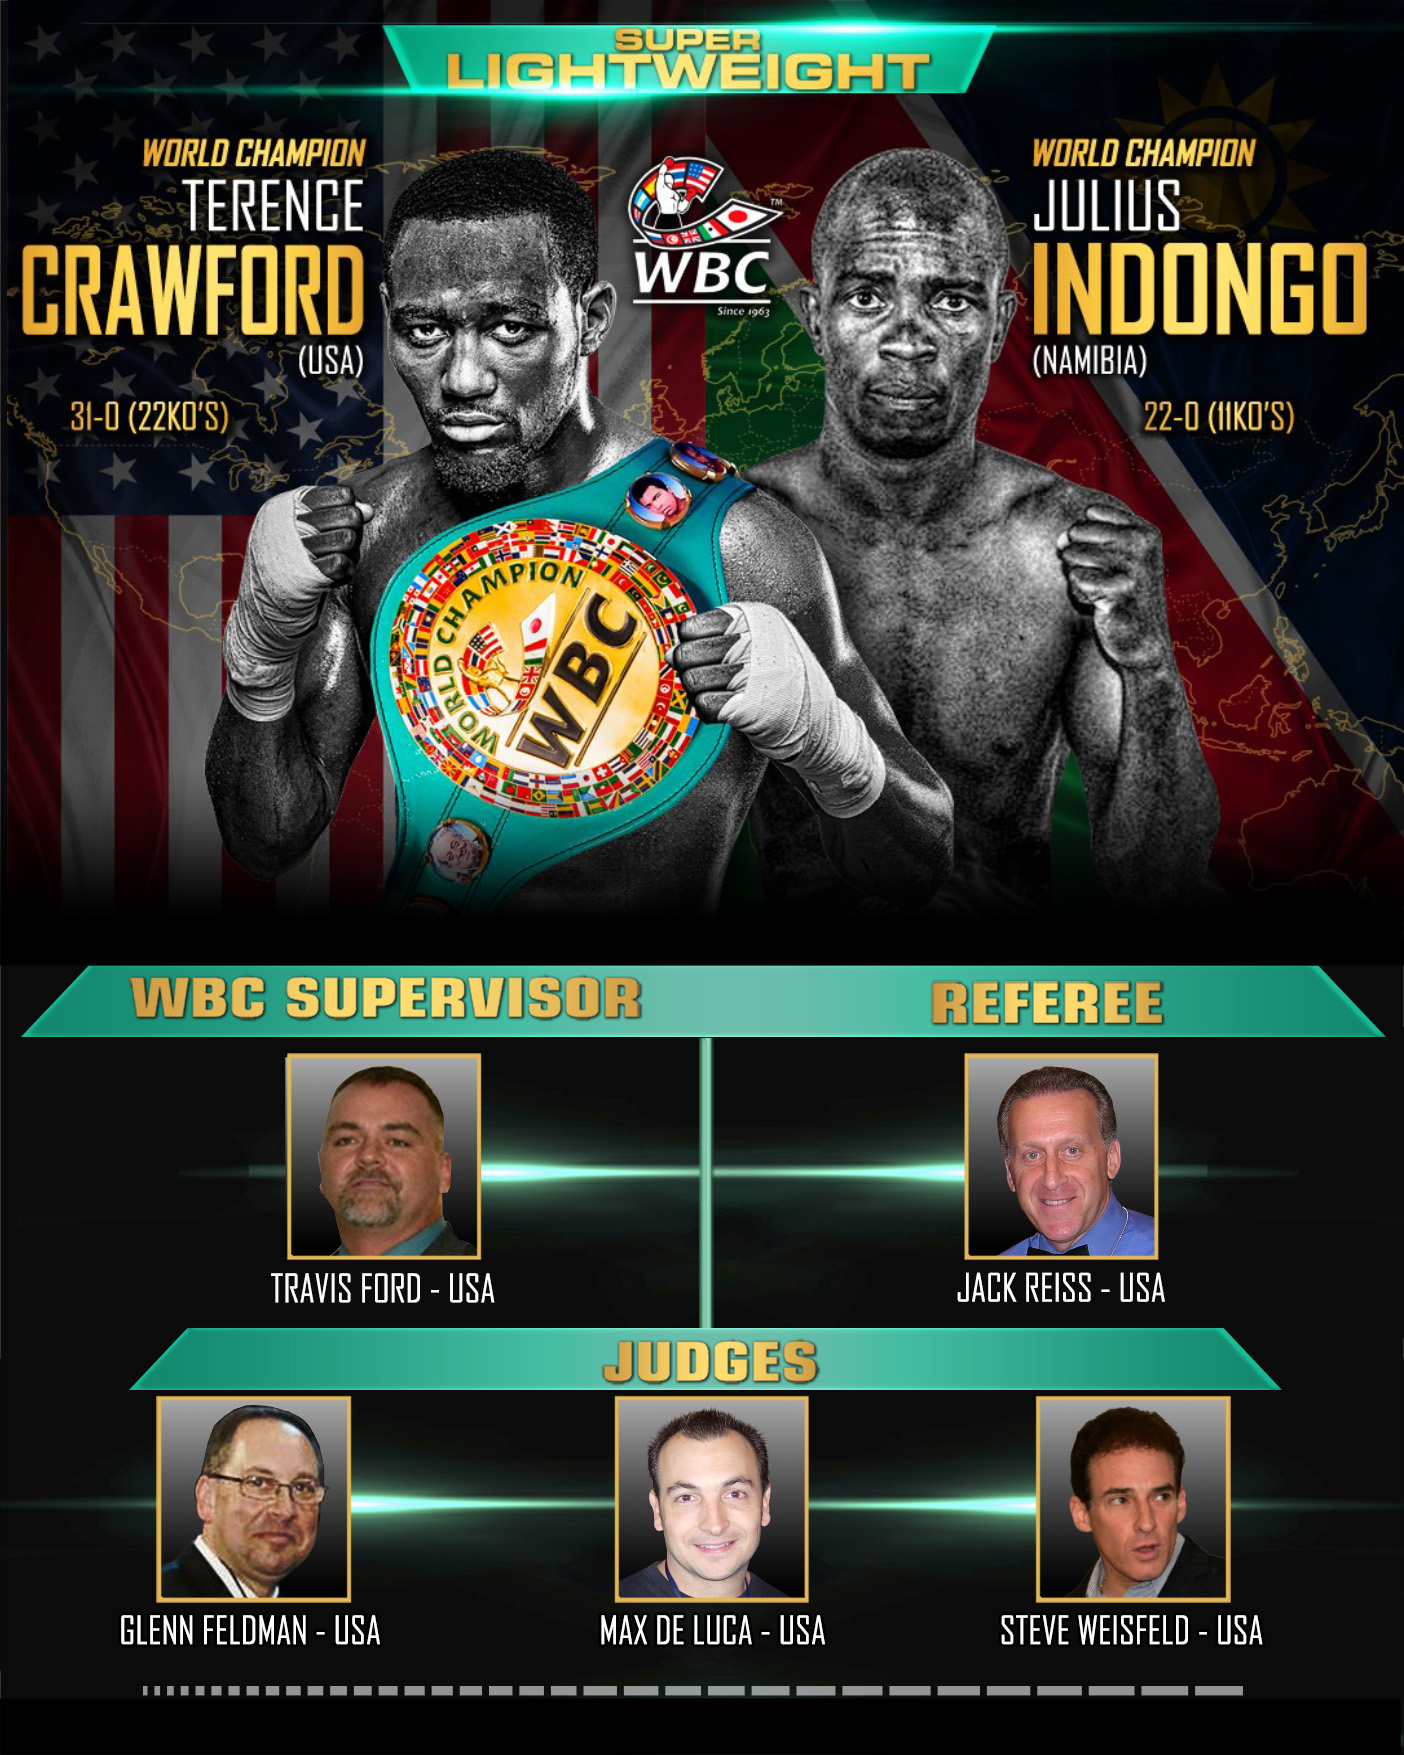 CRAWFORD-VS-INDONGO-RING-OFFICIALS